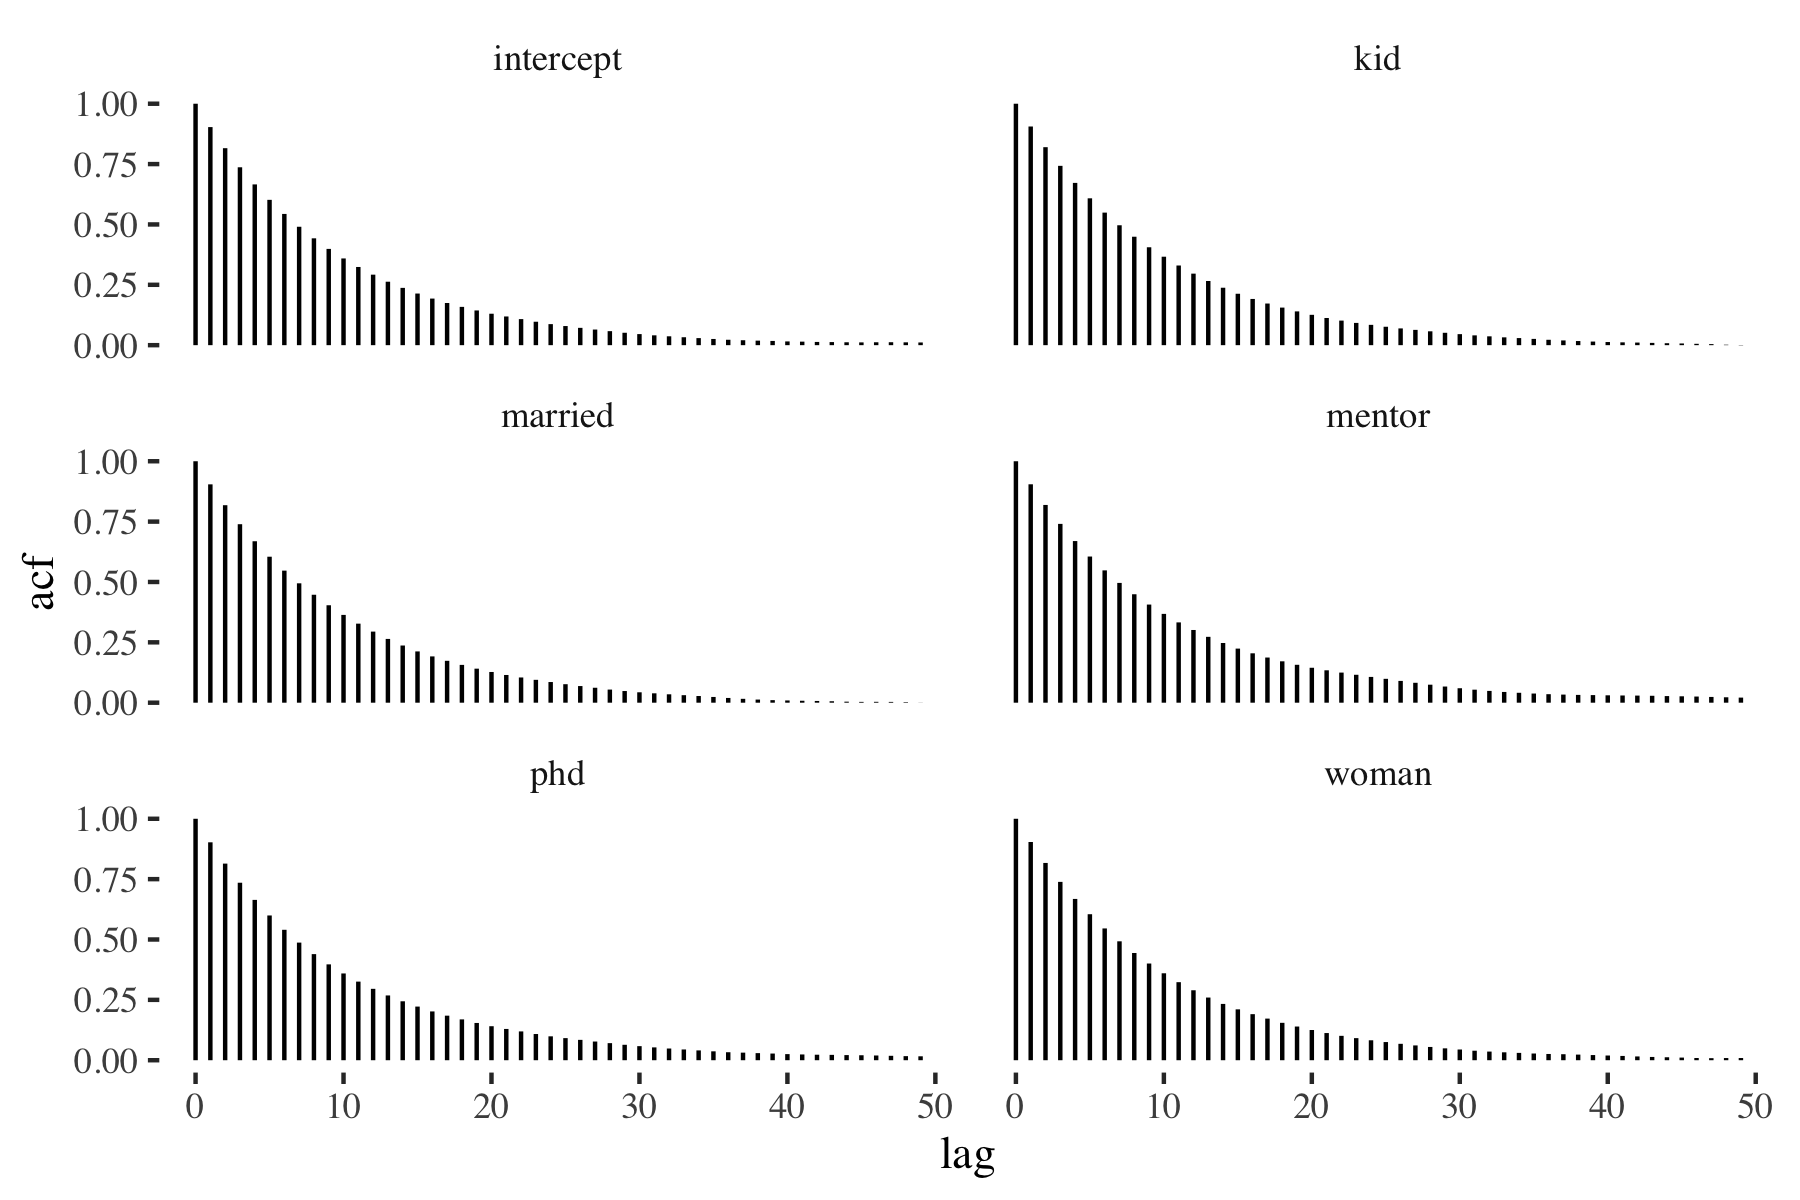 Figure 2: Autocorrelation plots of the random-walk MH draws